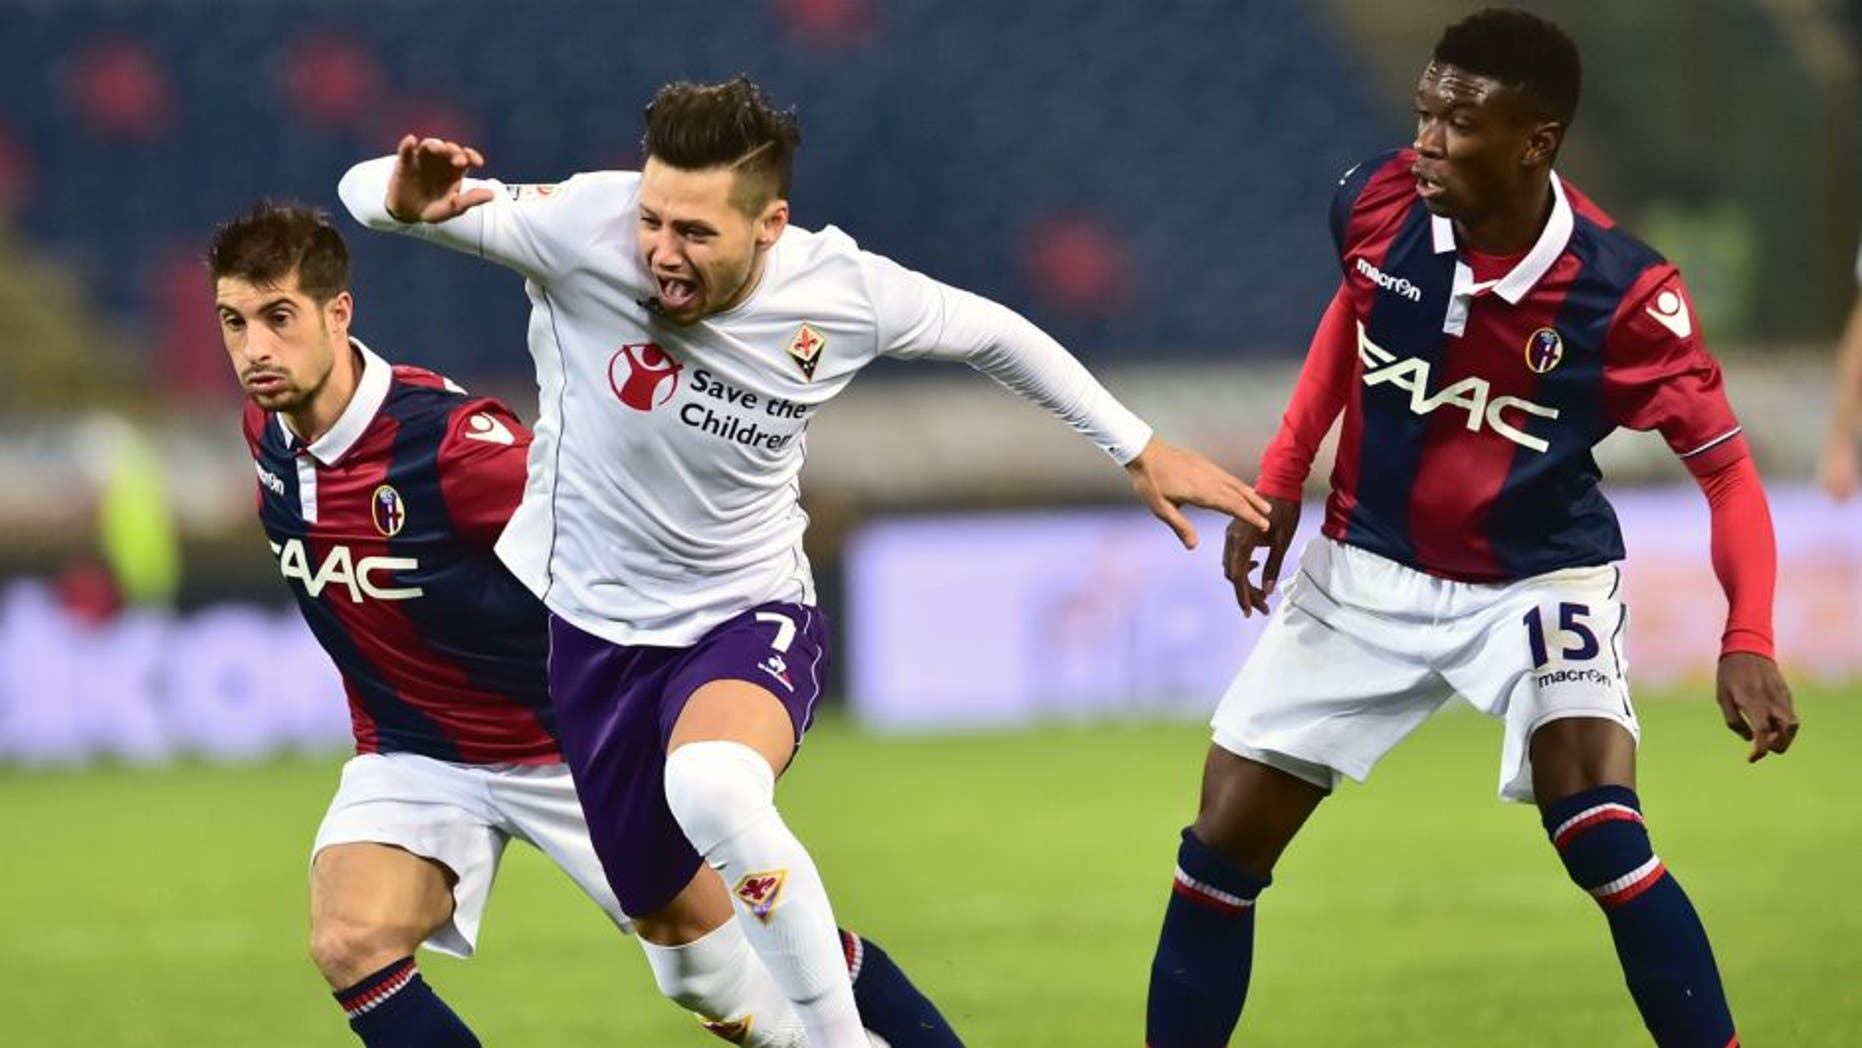 "Fiorentina's forward from Argentina Mauro Zarate (C) fights for the ball with Bologna's defender from Senegal Ibrahima Mbaye and Bologna's forward from Italy Franco Brienza (L) during the Italian Serie A football match Bologna vs Fiorentina at ""Renato Dall'Ara"" Stadium in Bologna on Febrauary 6, 2016. / AFP / GIUSEPPE CACACE (Photo credit should read GIUSEPPE CACACE/AFP/Getty Images)"